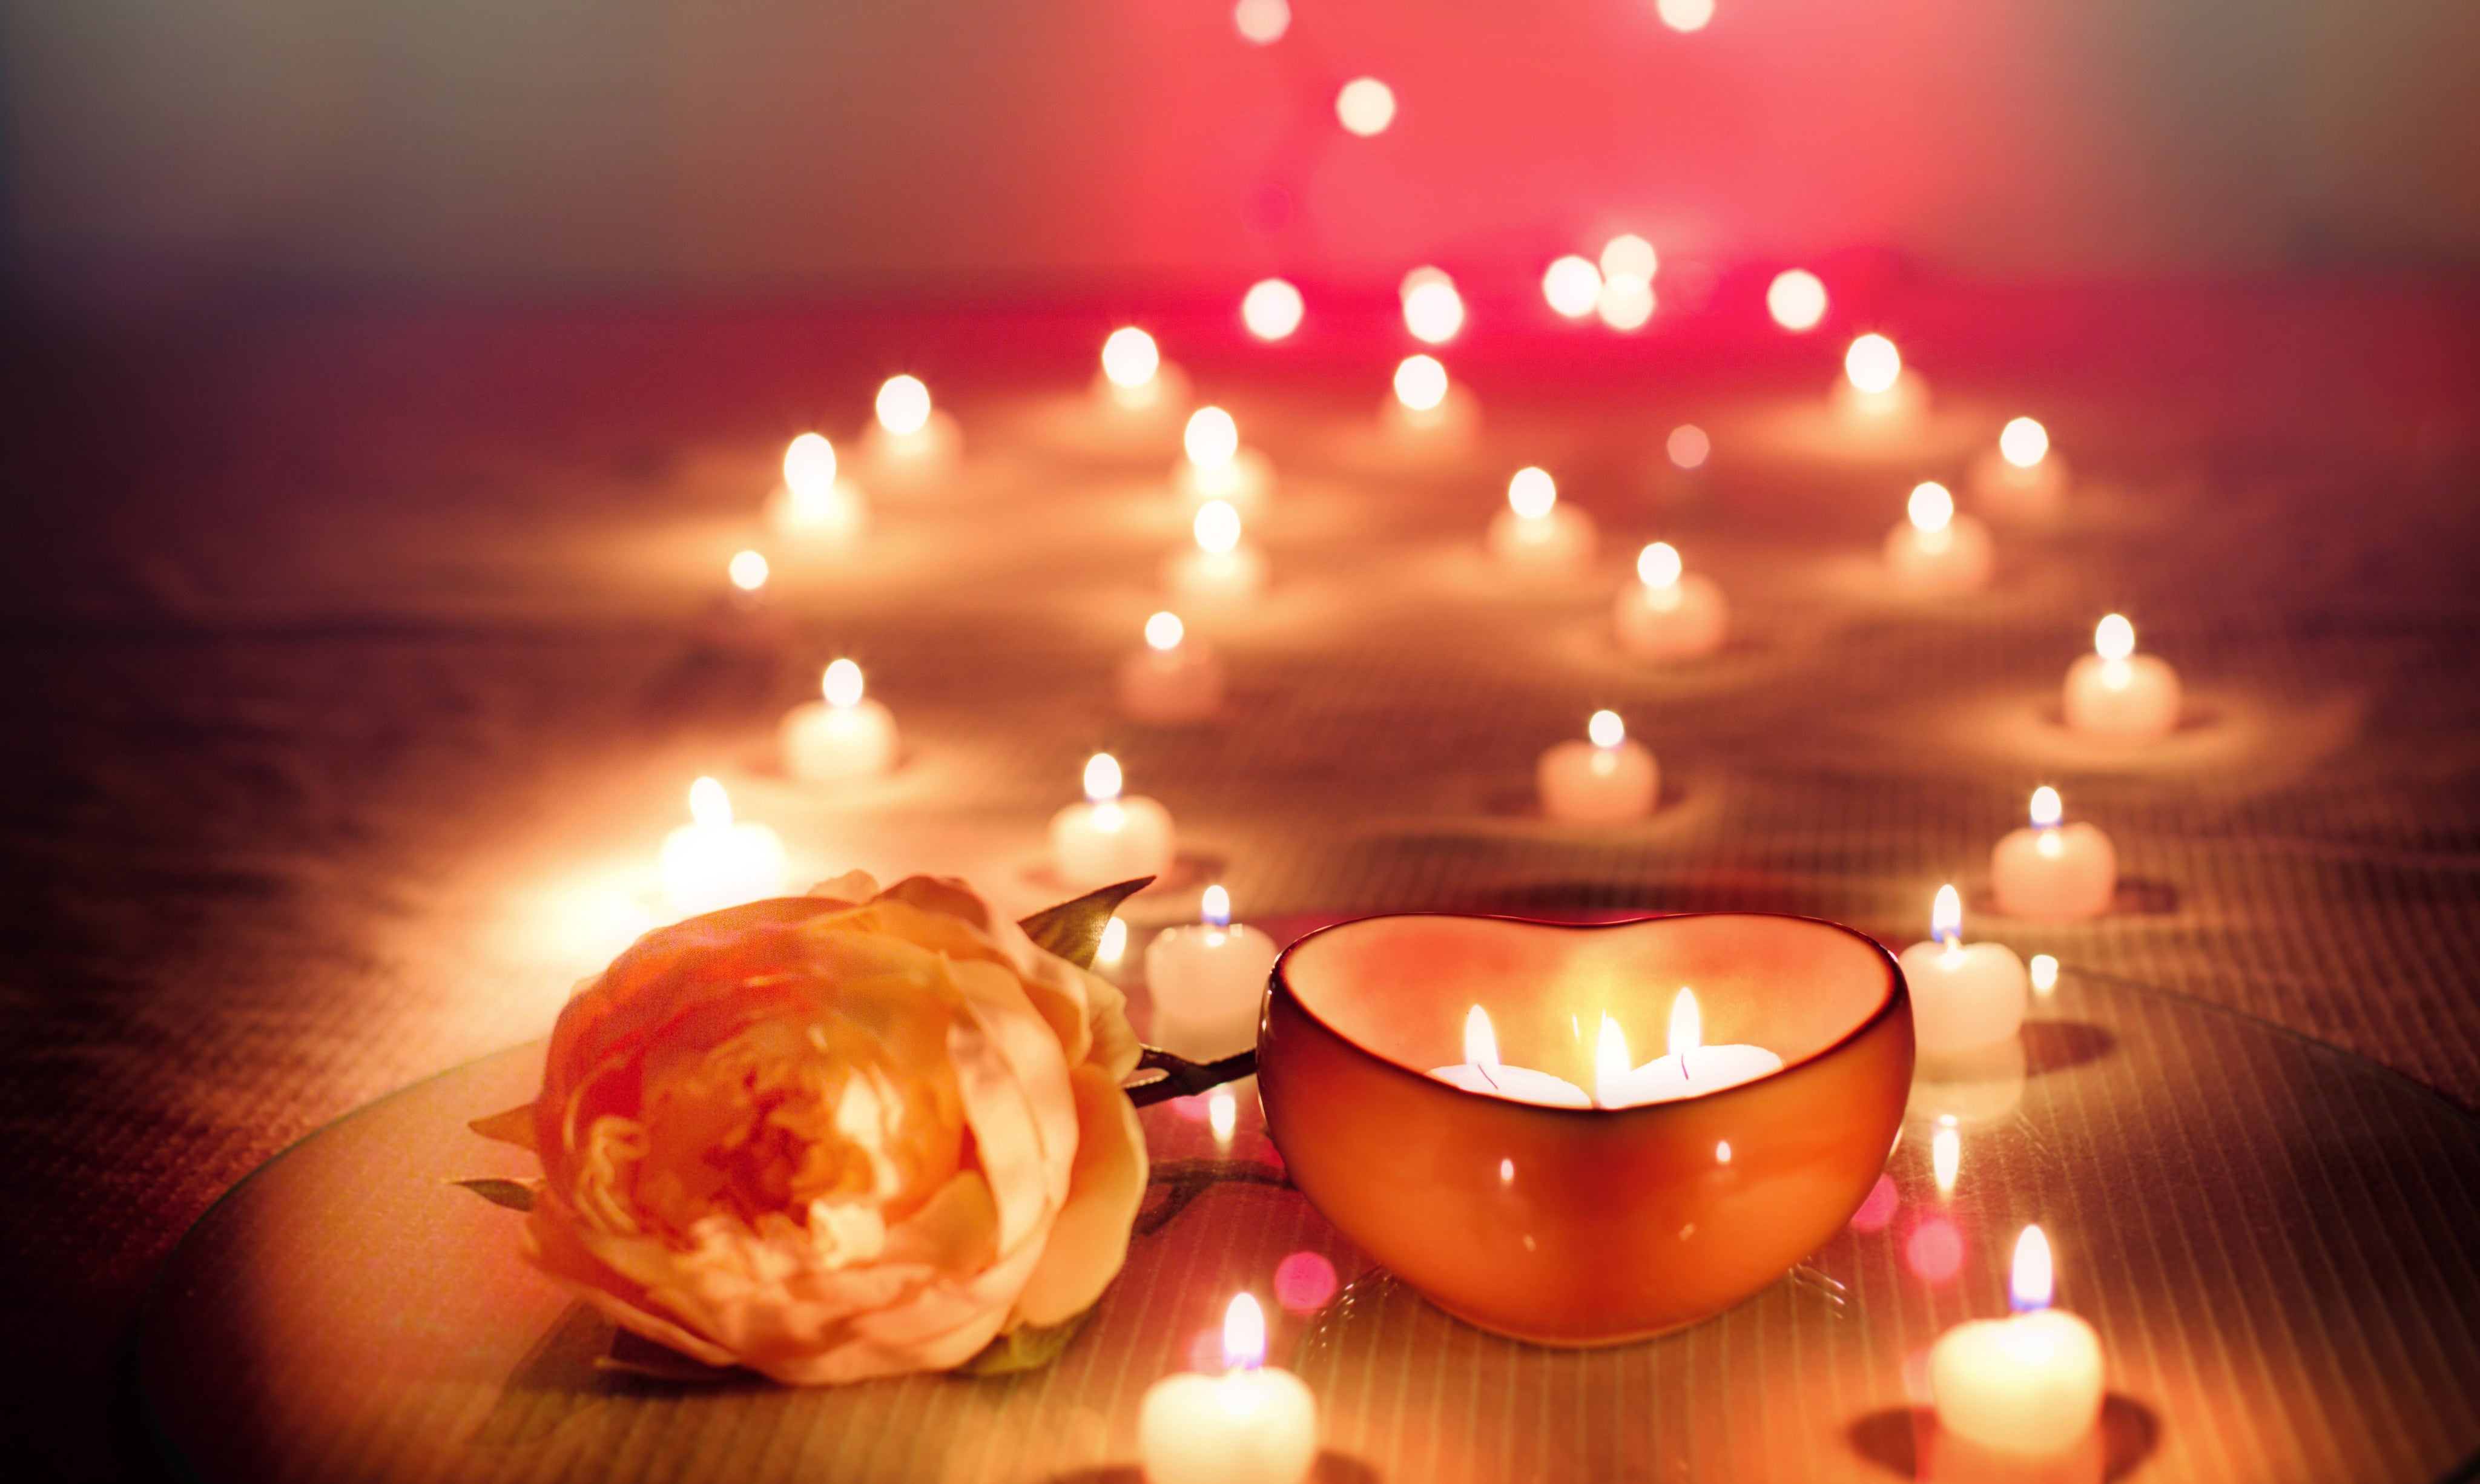 Heart candle and rose